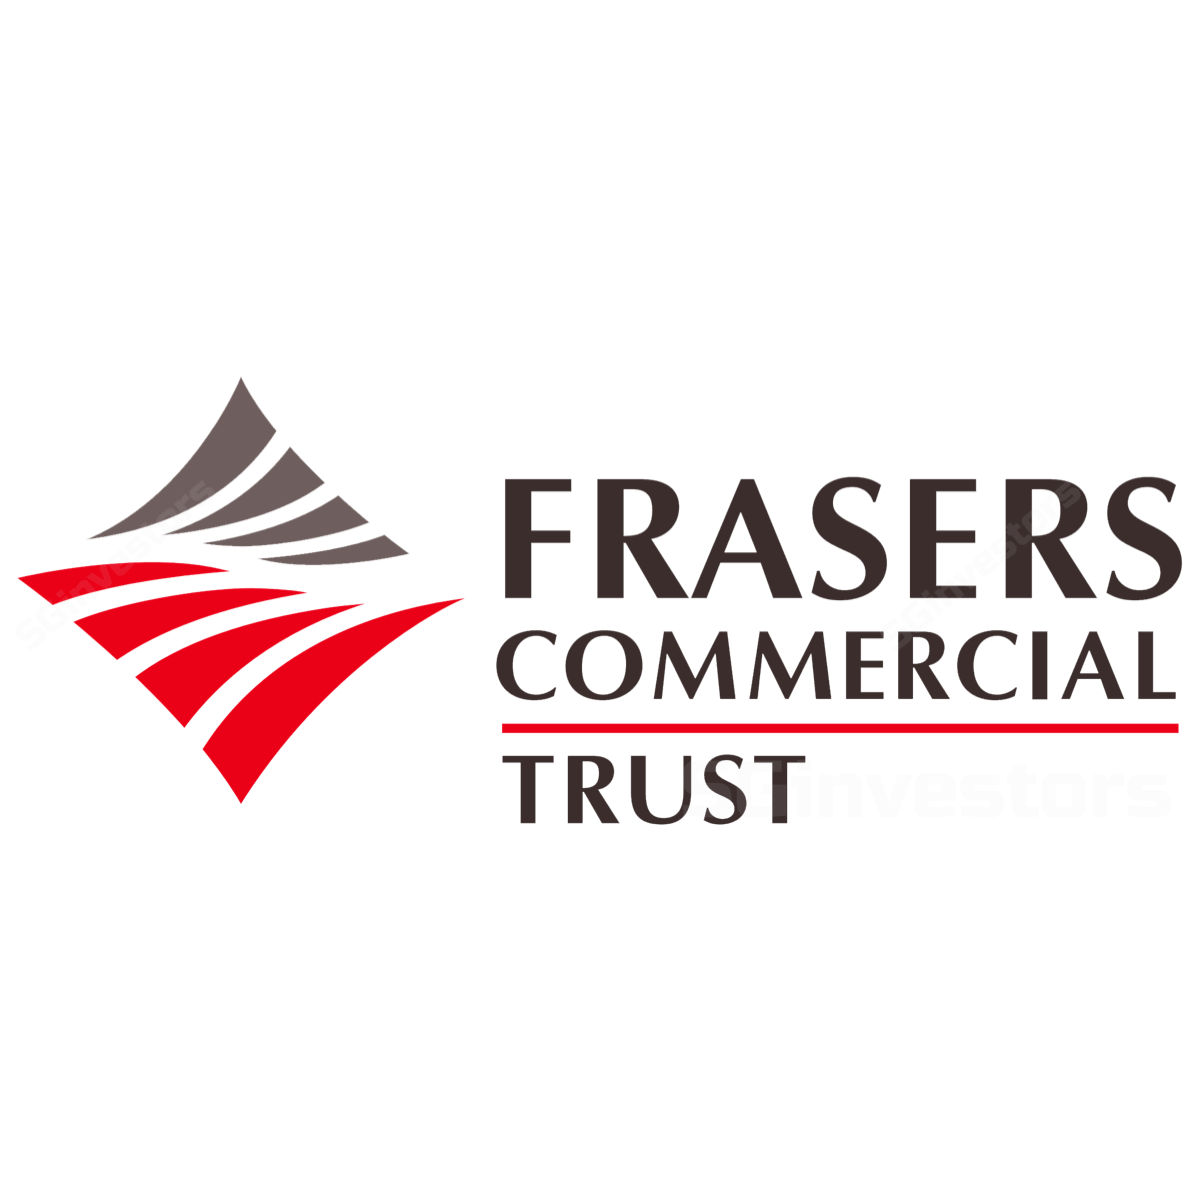 Frasers Commercial Trust - OCBC Investment 2017-04-24: Marginal Growth Delivered